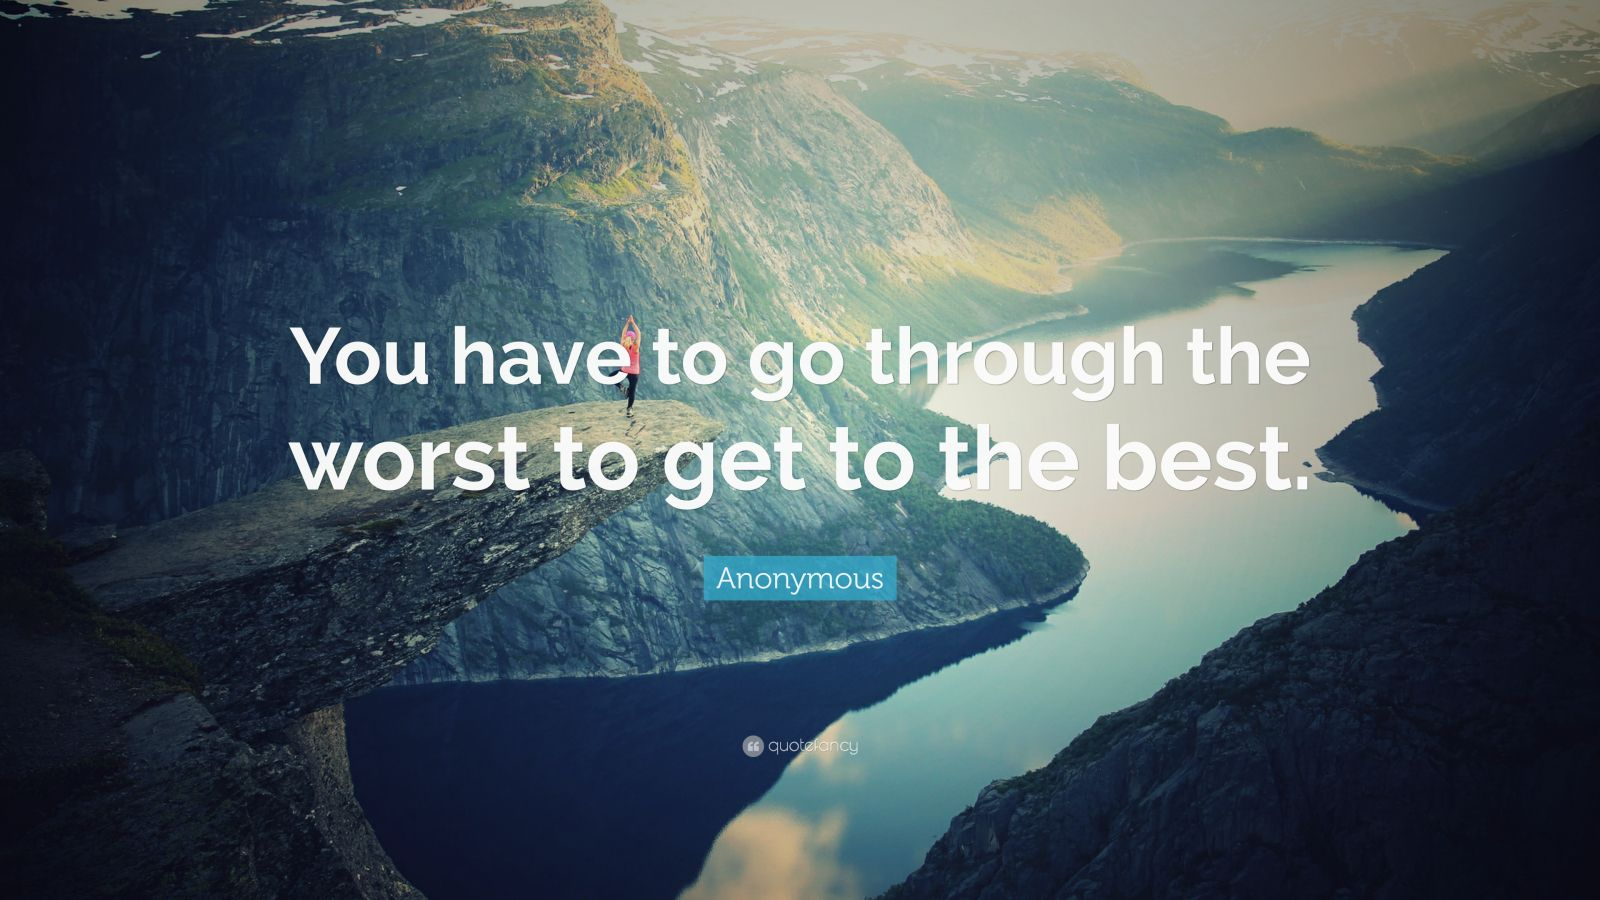 Motivational Bodybuilding Quotes You Have To Go Through The Worst Get